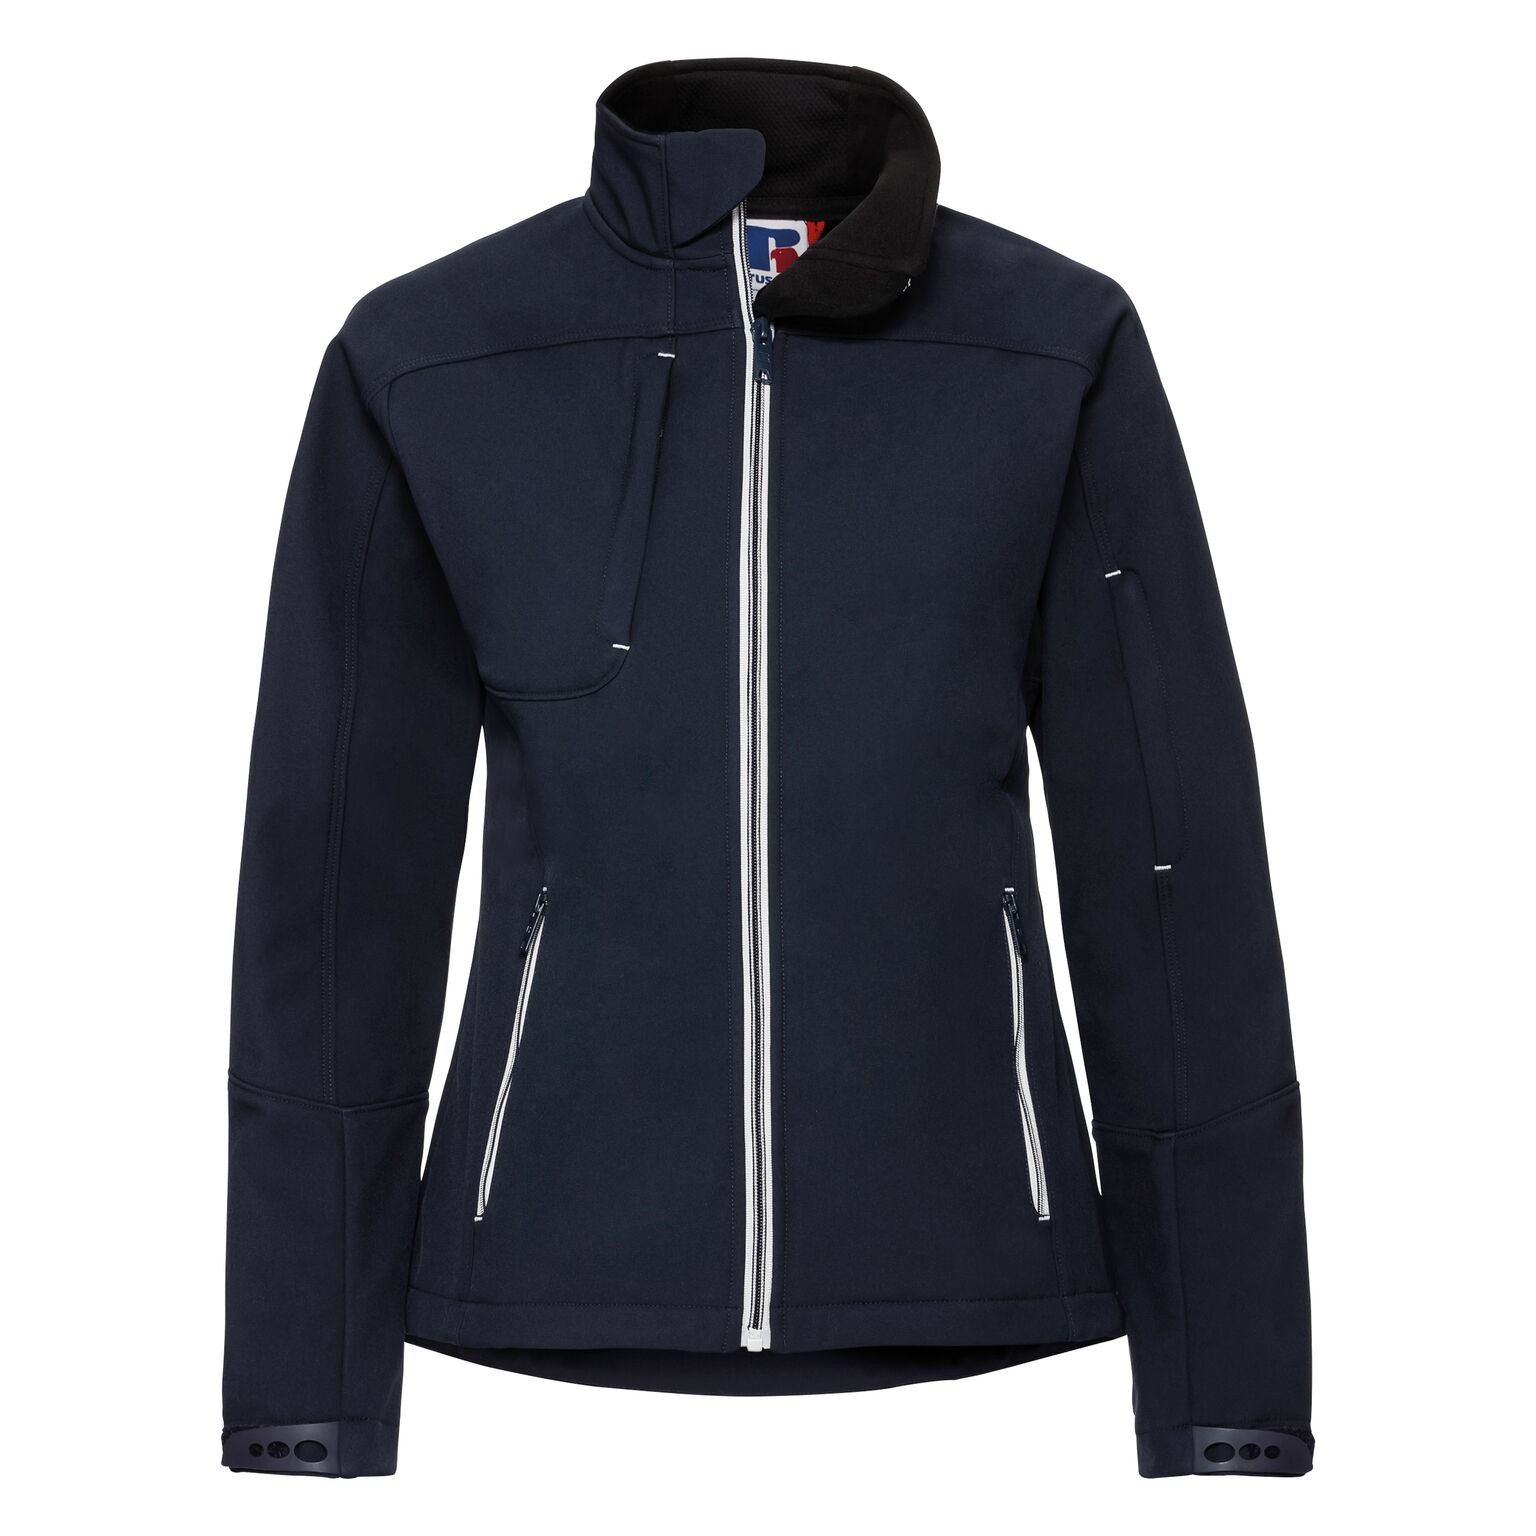 Russell Women/Ladies Bionic Softshell Jacket (2XL) (French Navy)